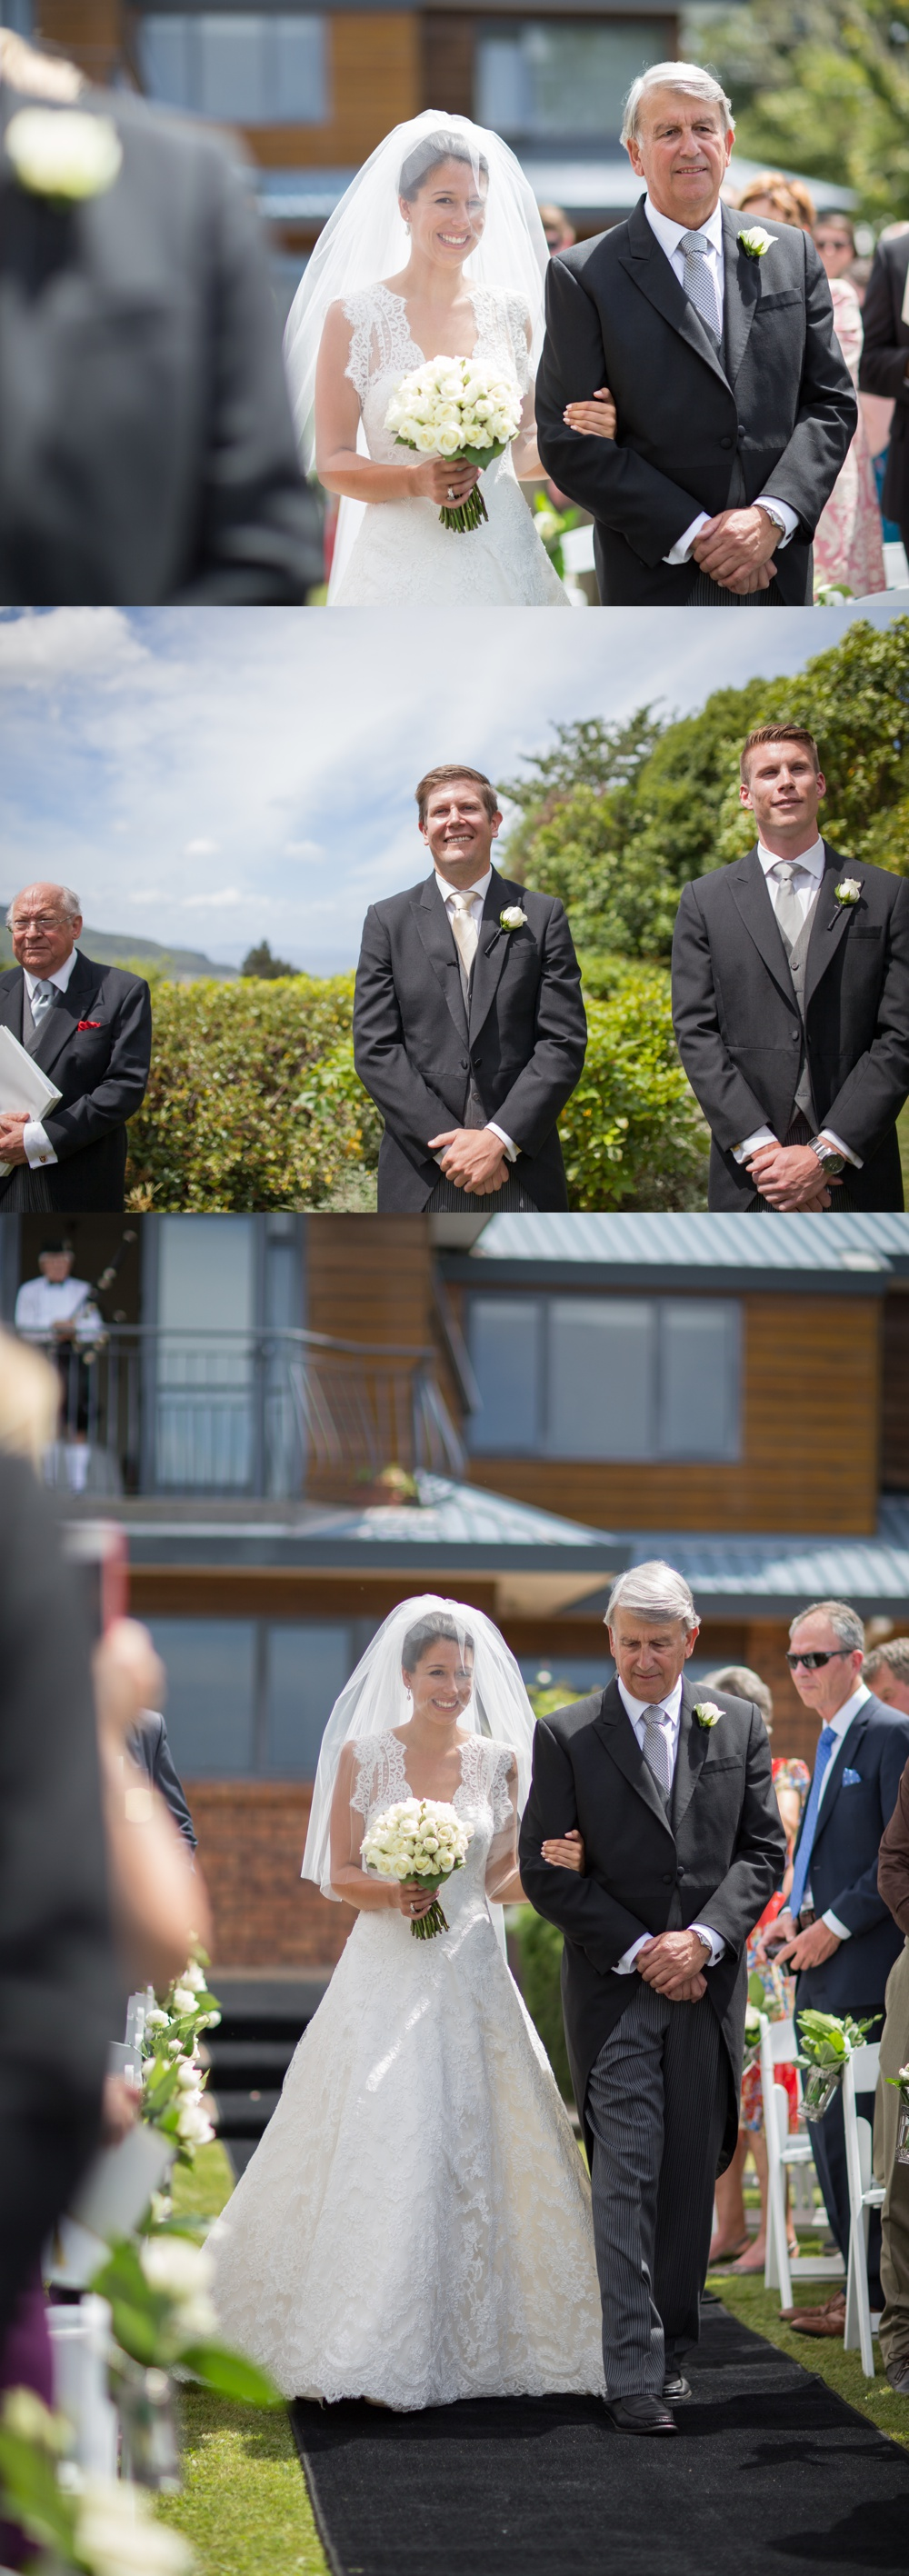 Taupo_wedding_photographer_023.jpg